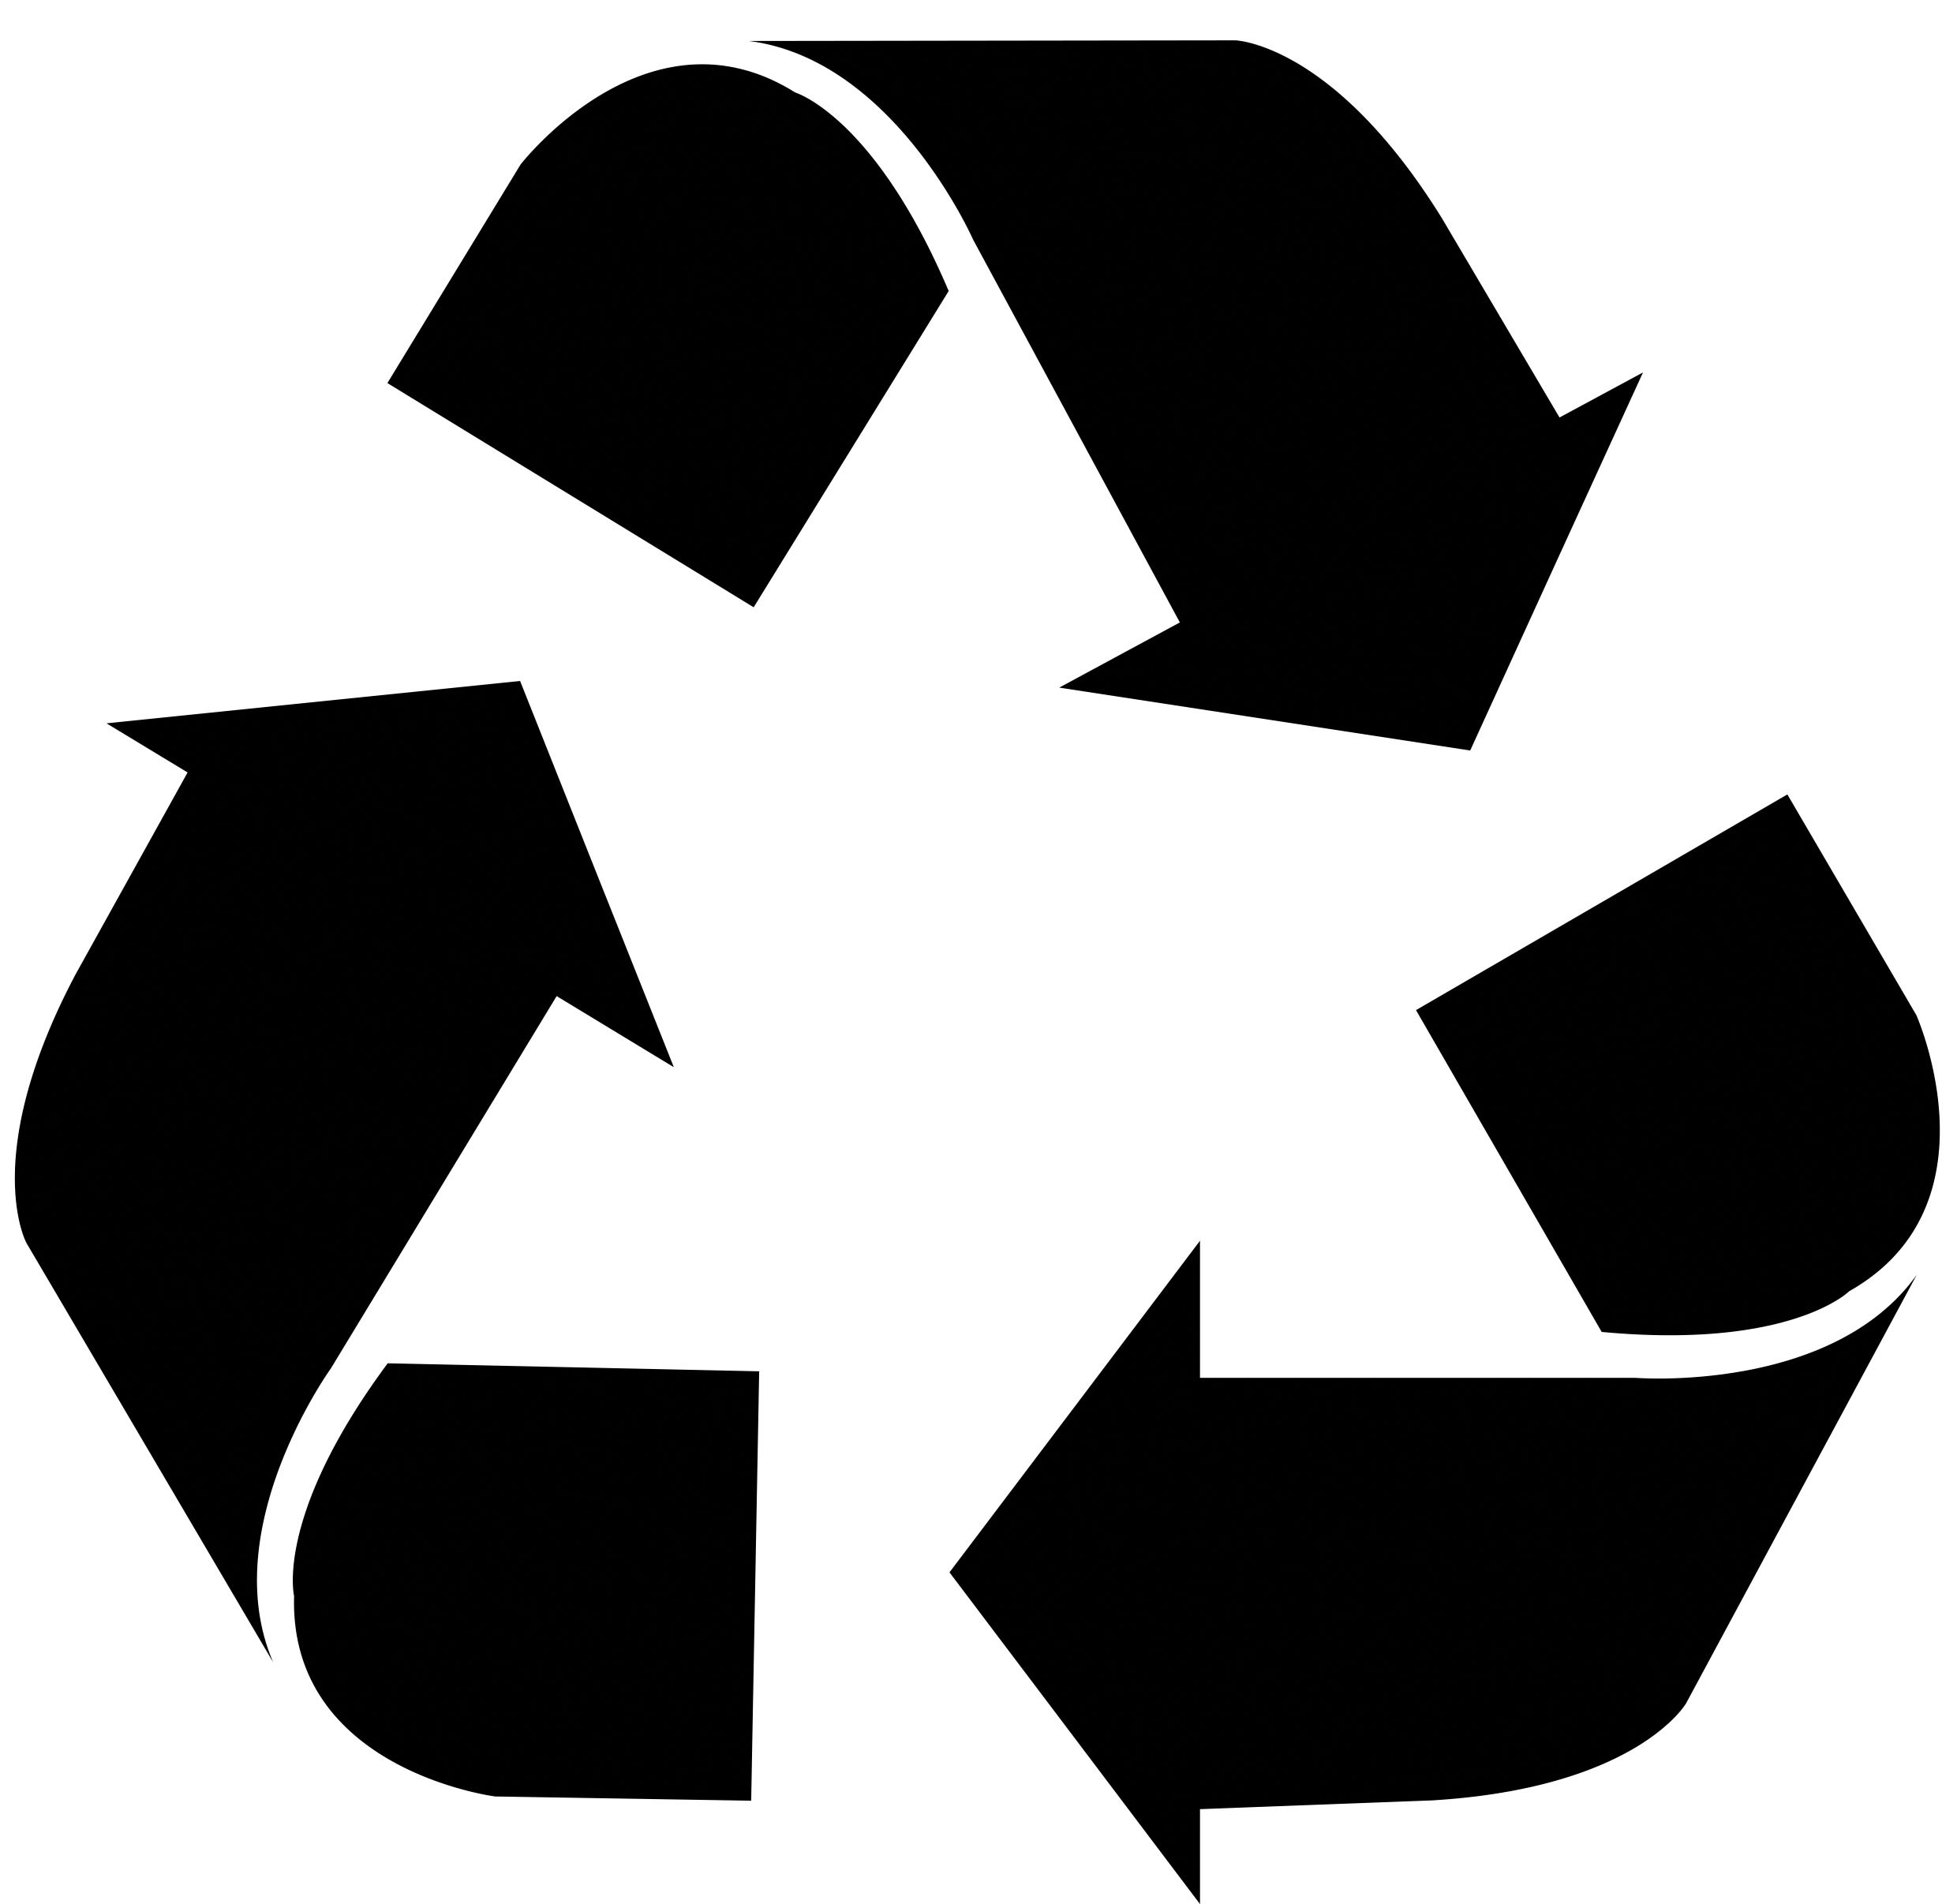 reduce reuse recycle symbol printable png file recycle icon vector free transparent png symbol reduce reuse printable recycle